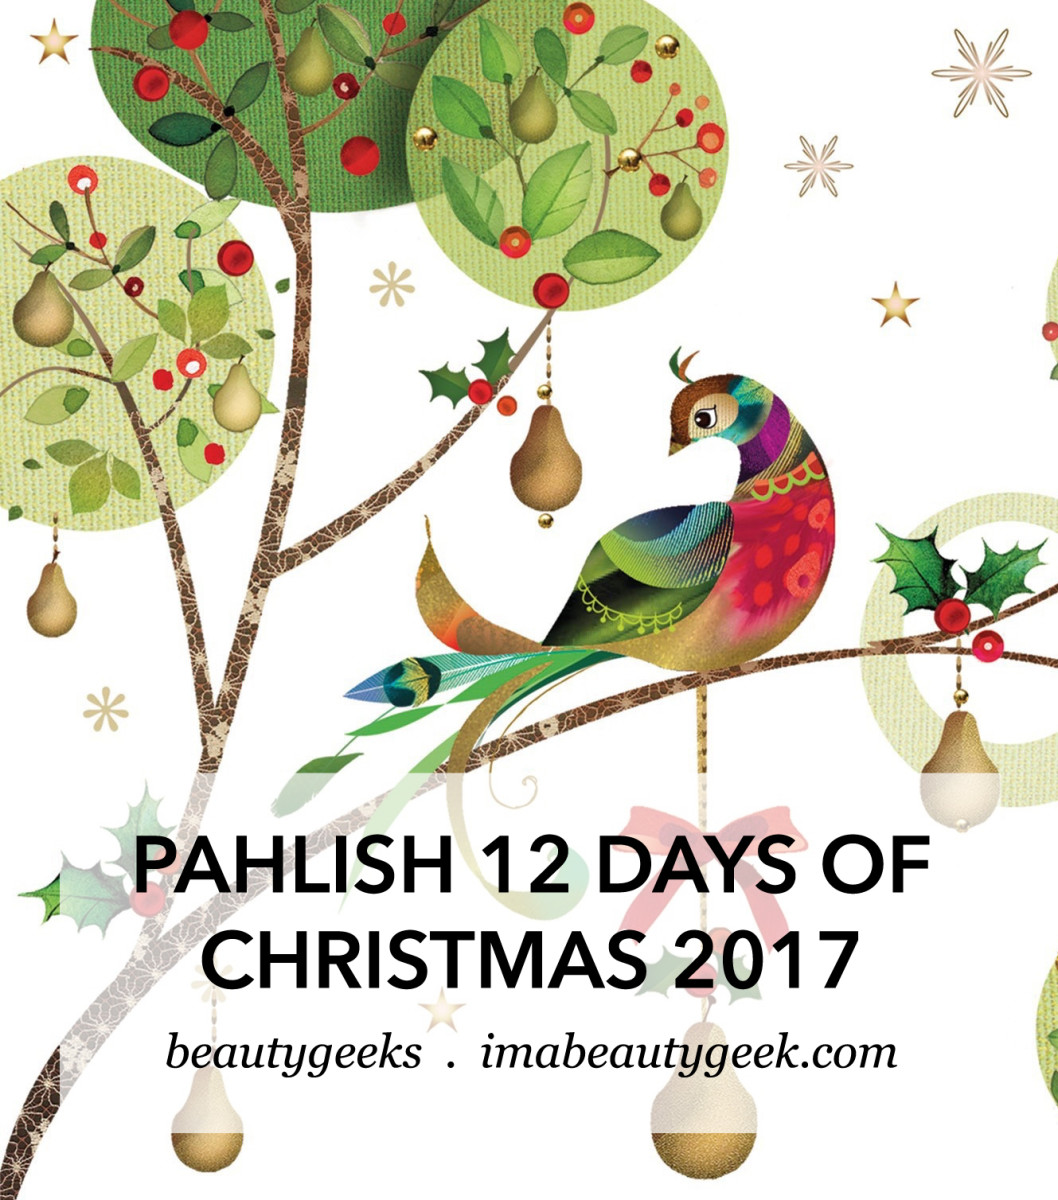 Pahlish 12 Days of Christmas 2017-BEAUTYGEEKS